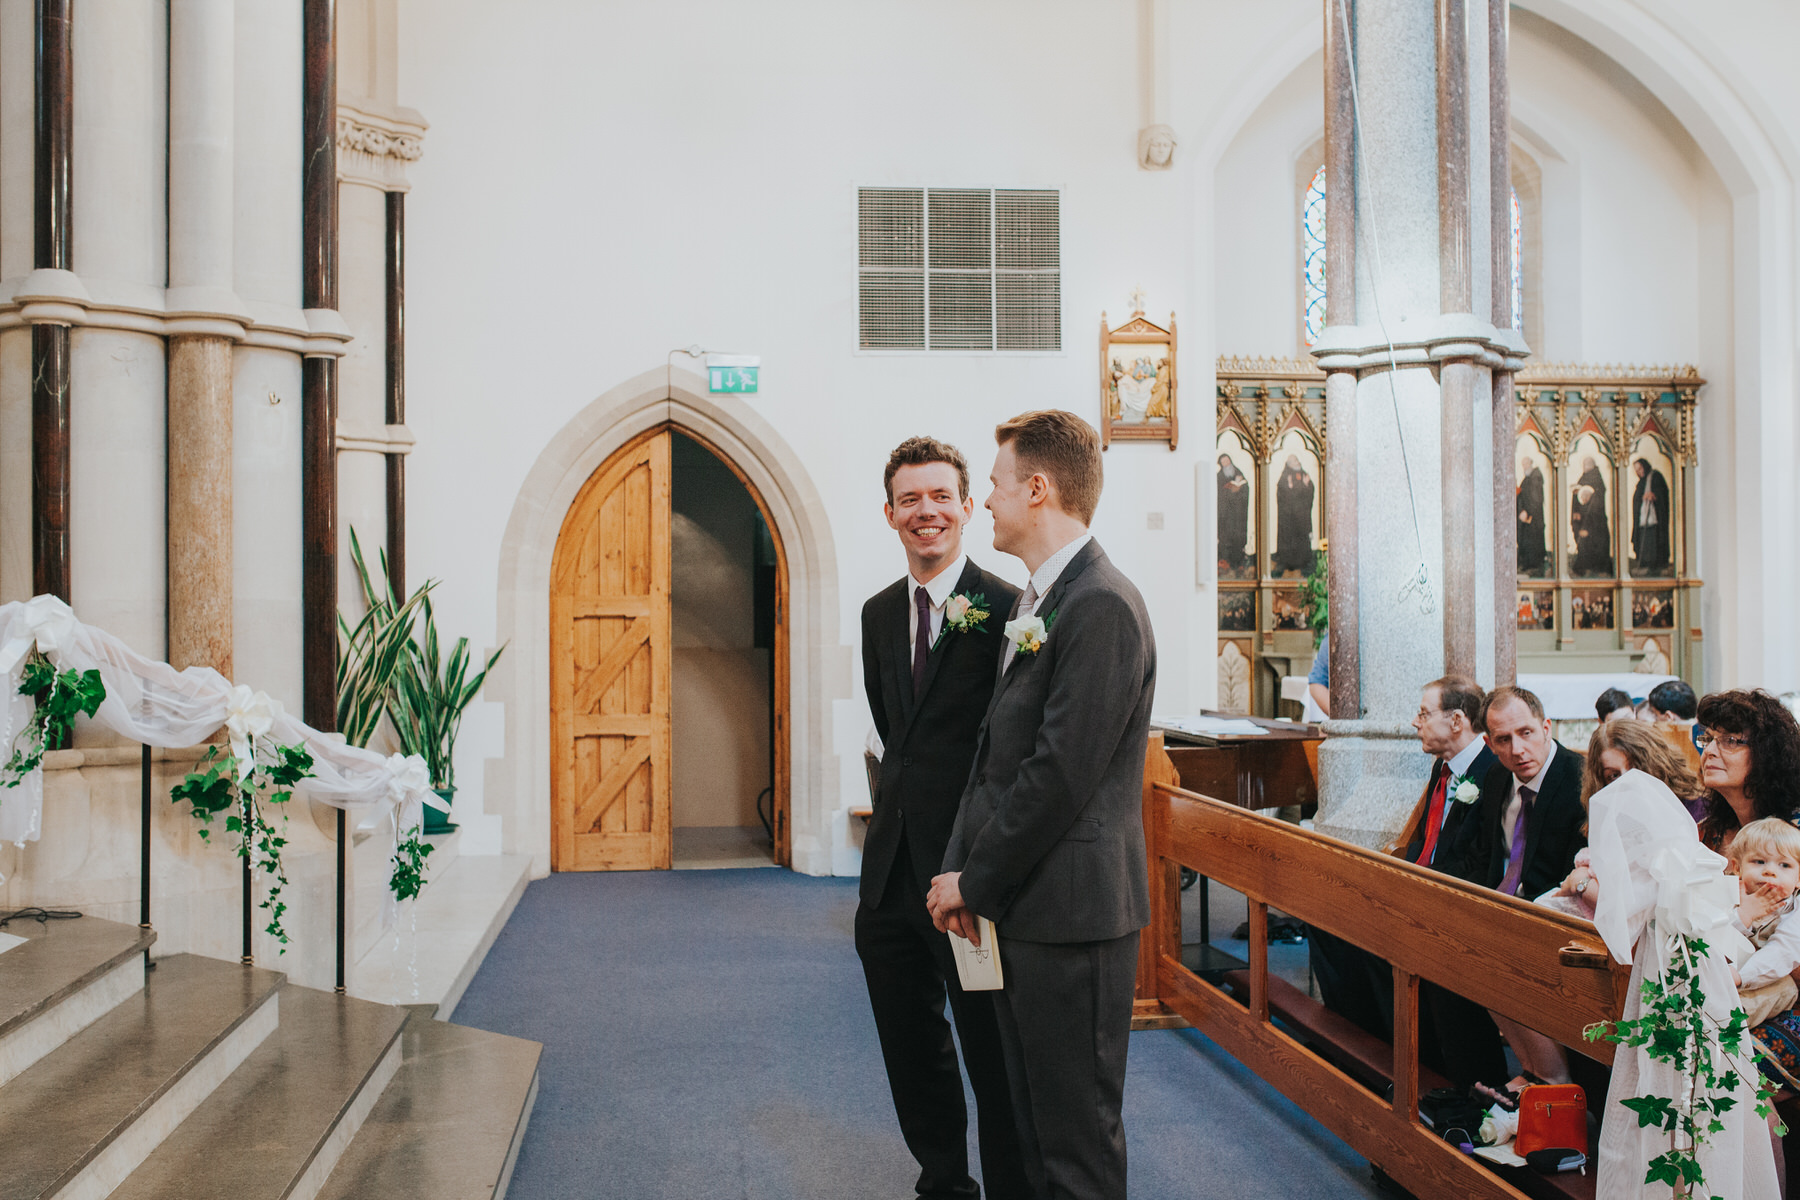 21 groom bestman Fulham Catholic Church wedding.jpg